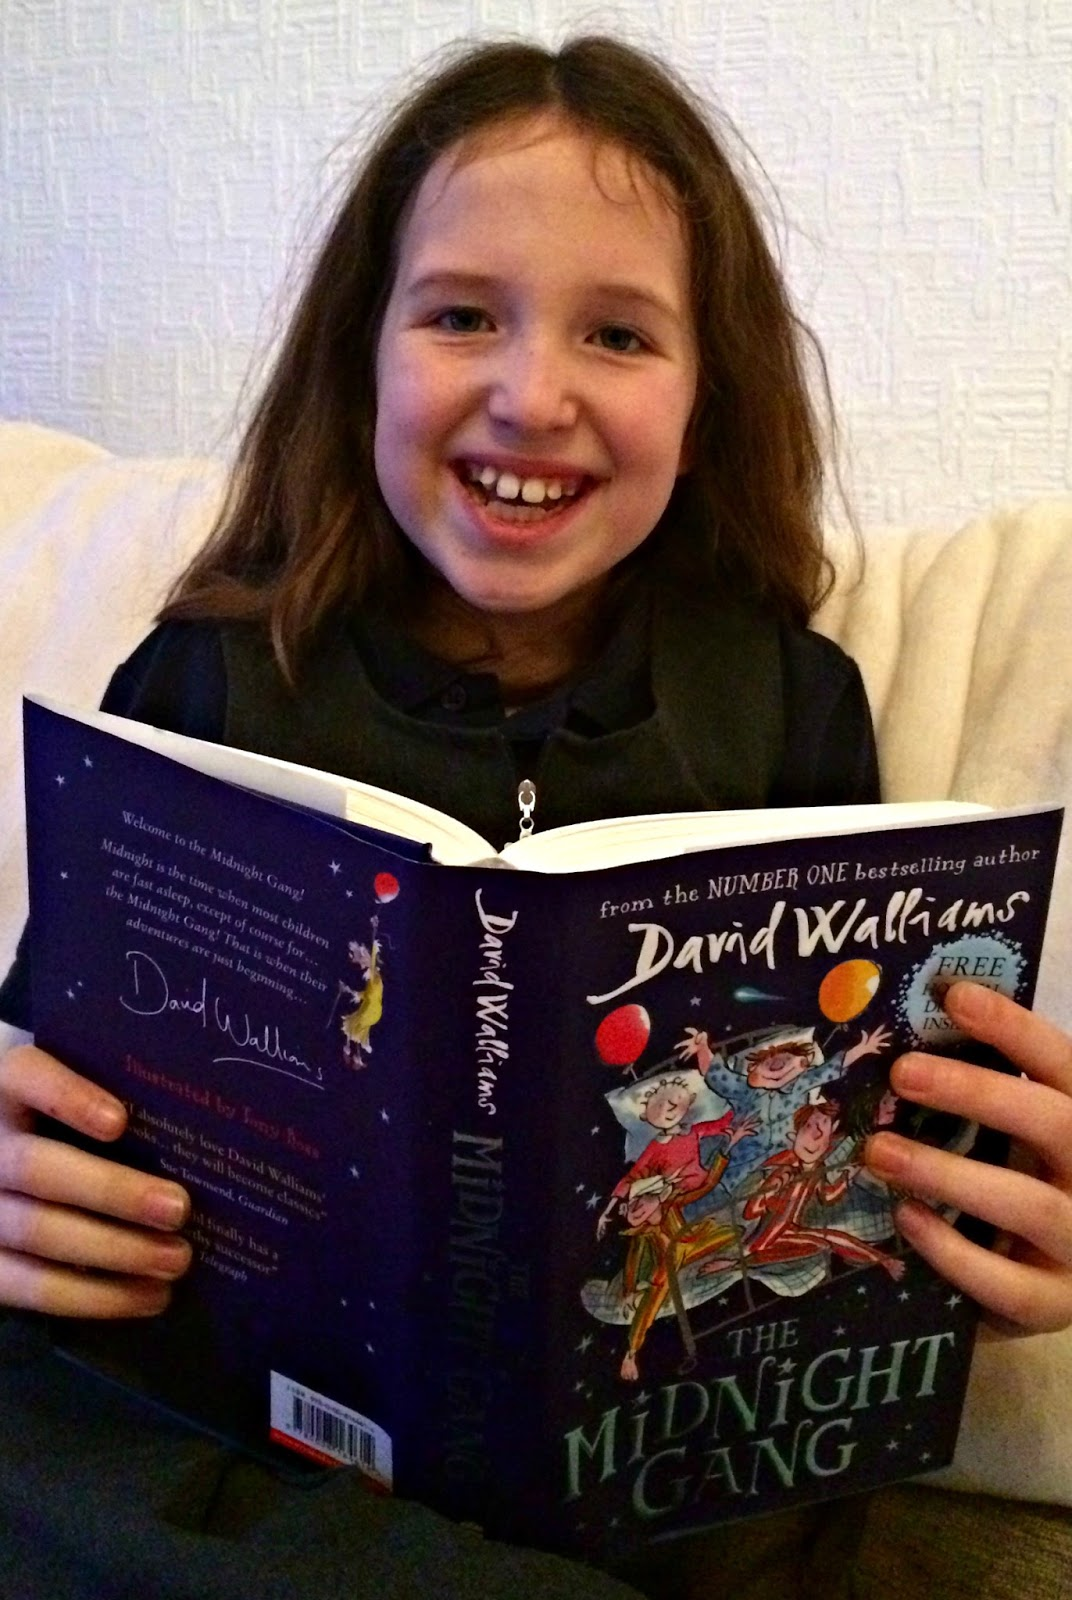 Caitlin reading David Walliams' The Midnight Gang